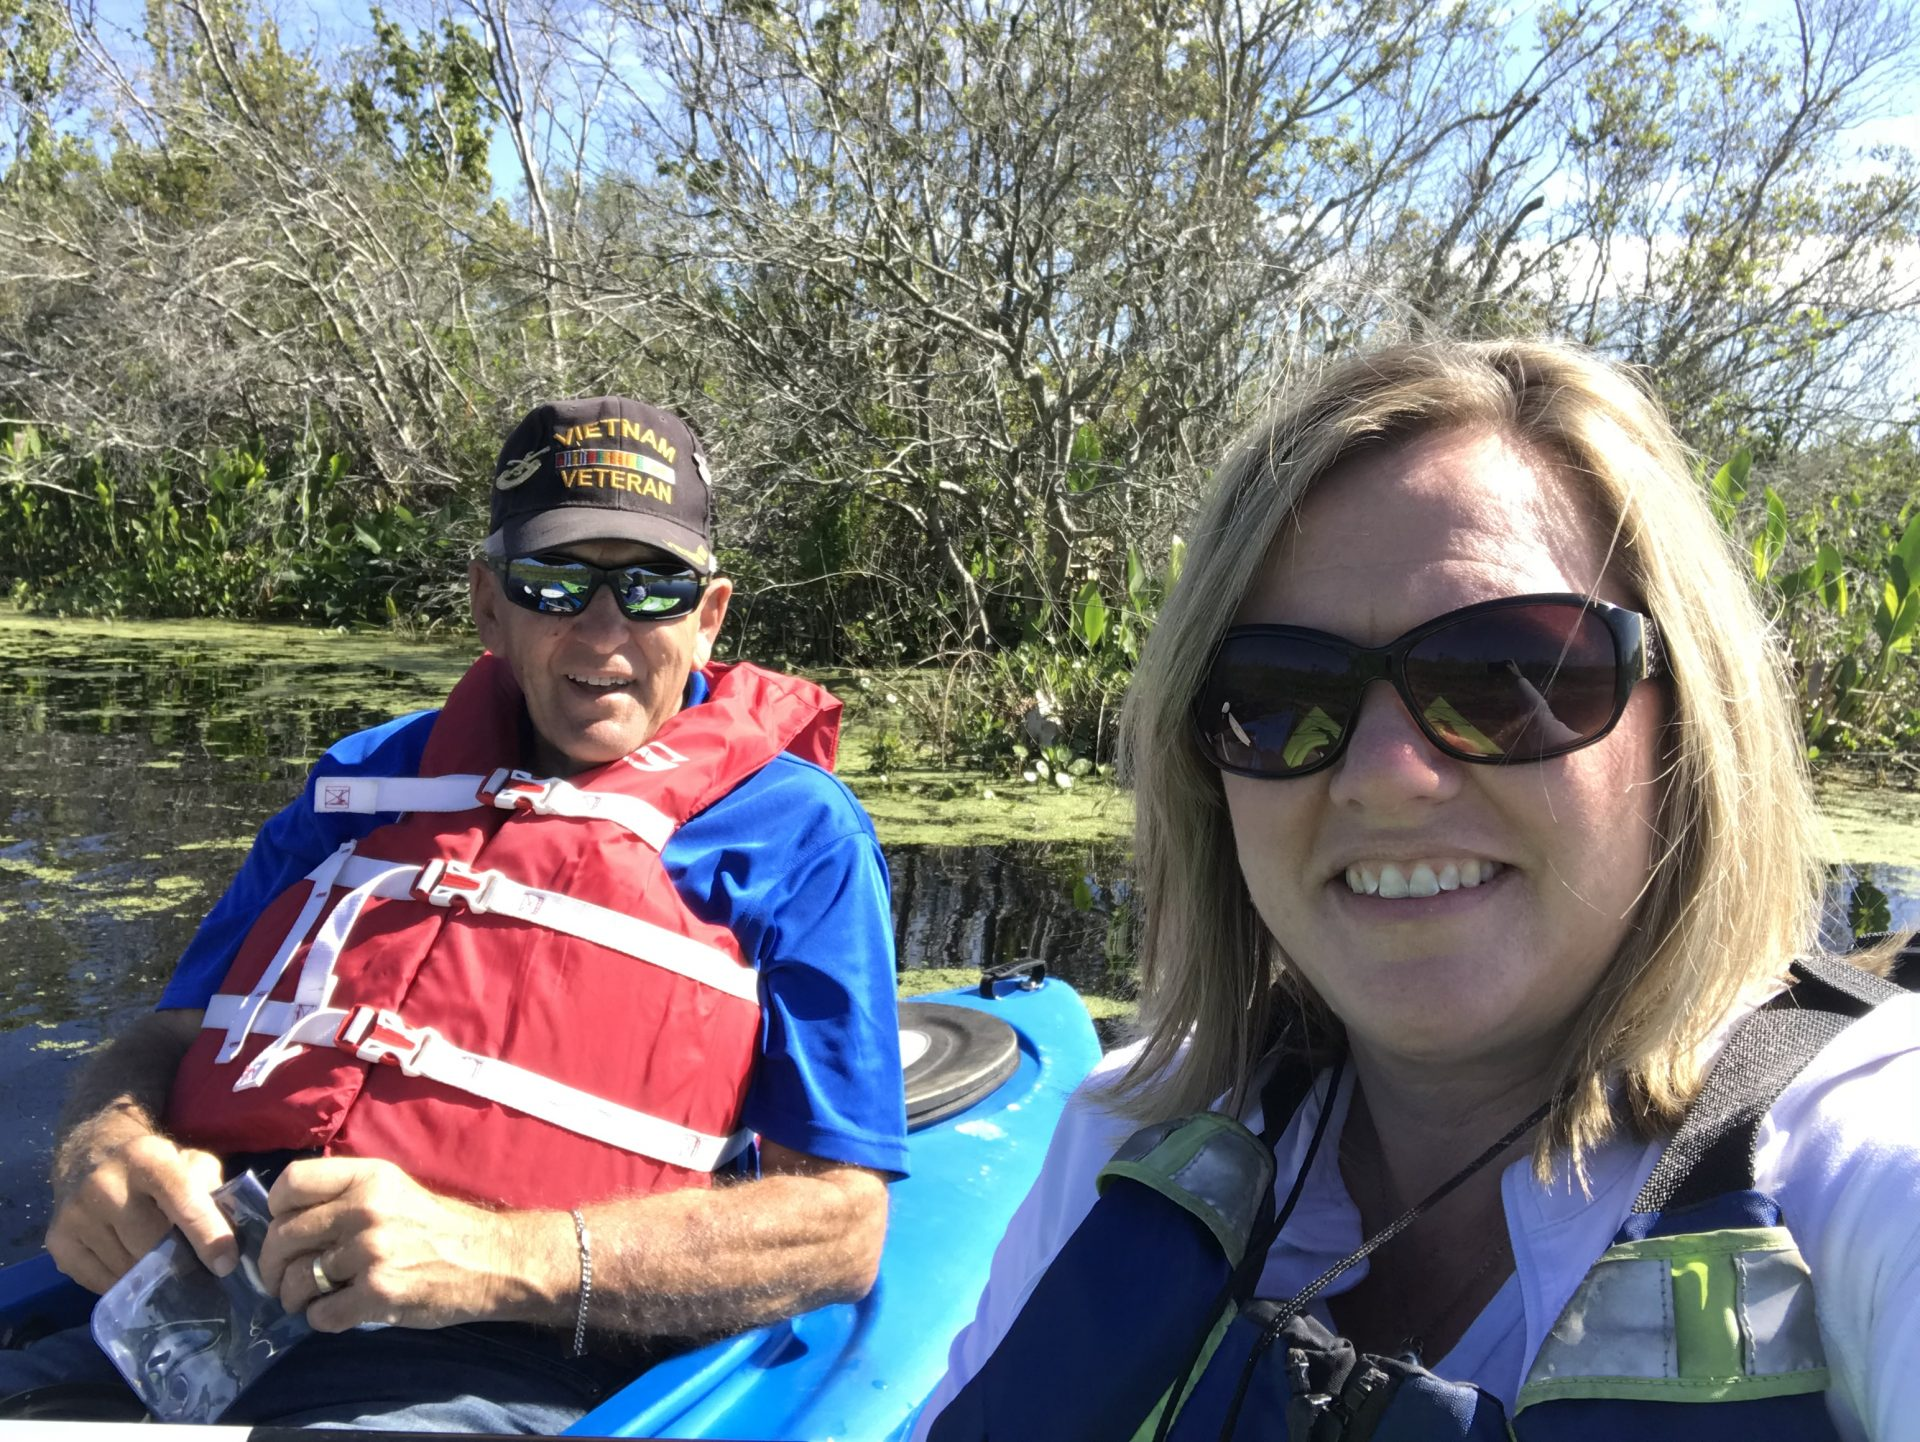 Dad I'm so glad I pushed through my fear to kayak with the alligators, I had a great day kayaking with you. ❤️ You daughter Shannon